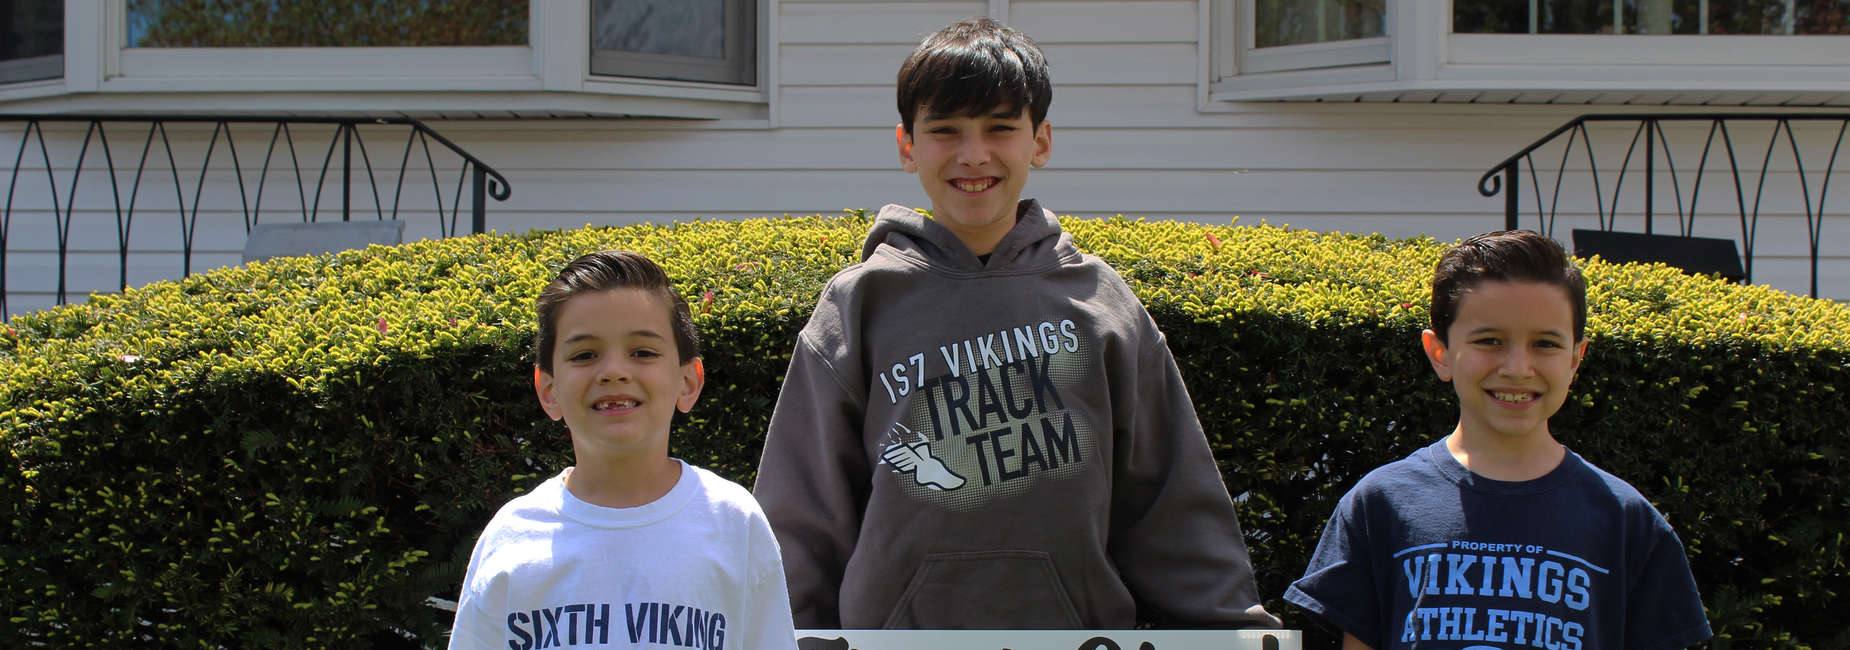 Three boys wearing I.S. 7 apparel smile for the camera.